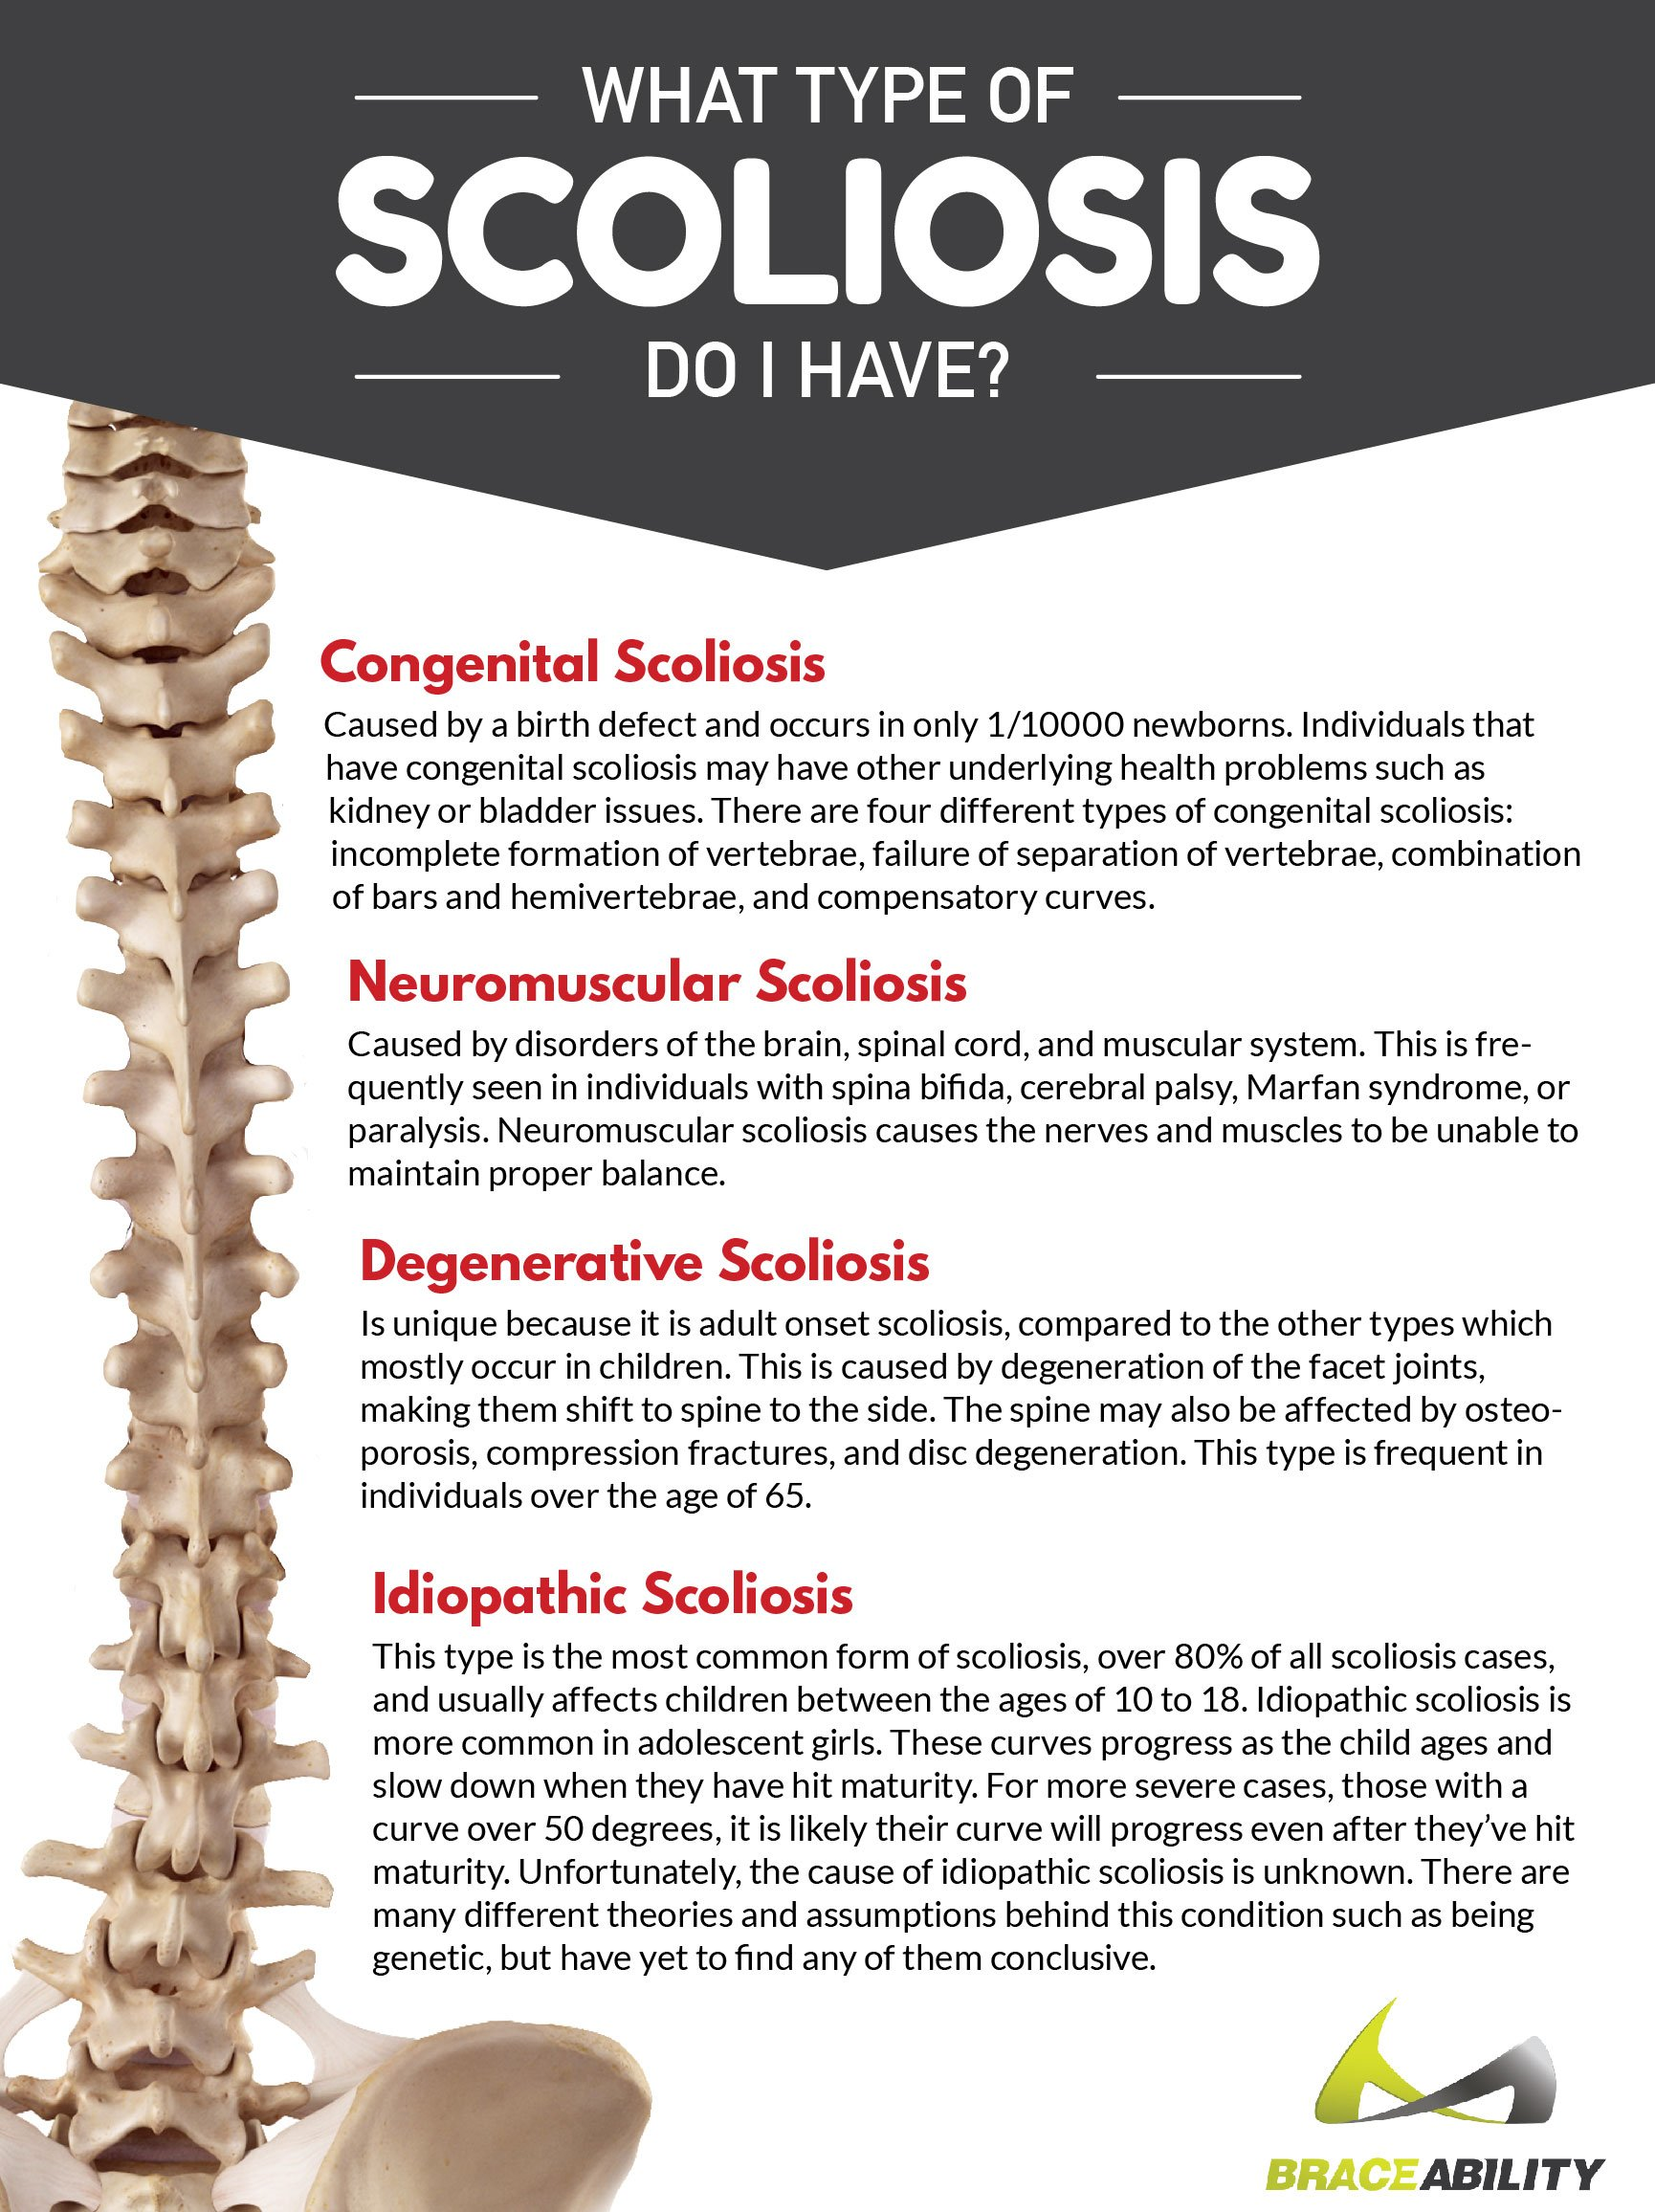 Types of Scoliosis